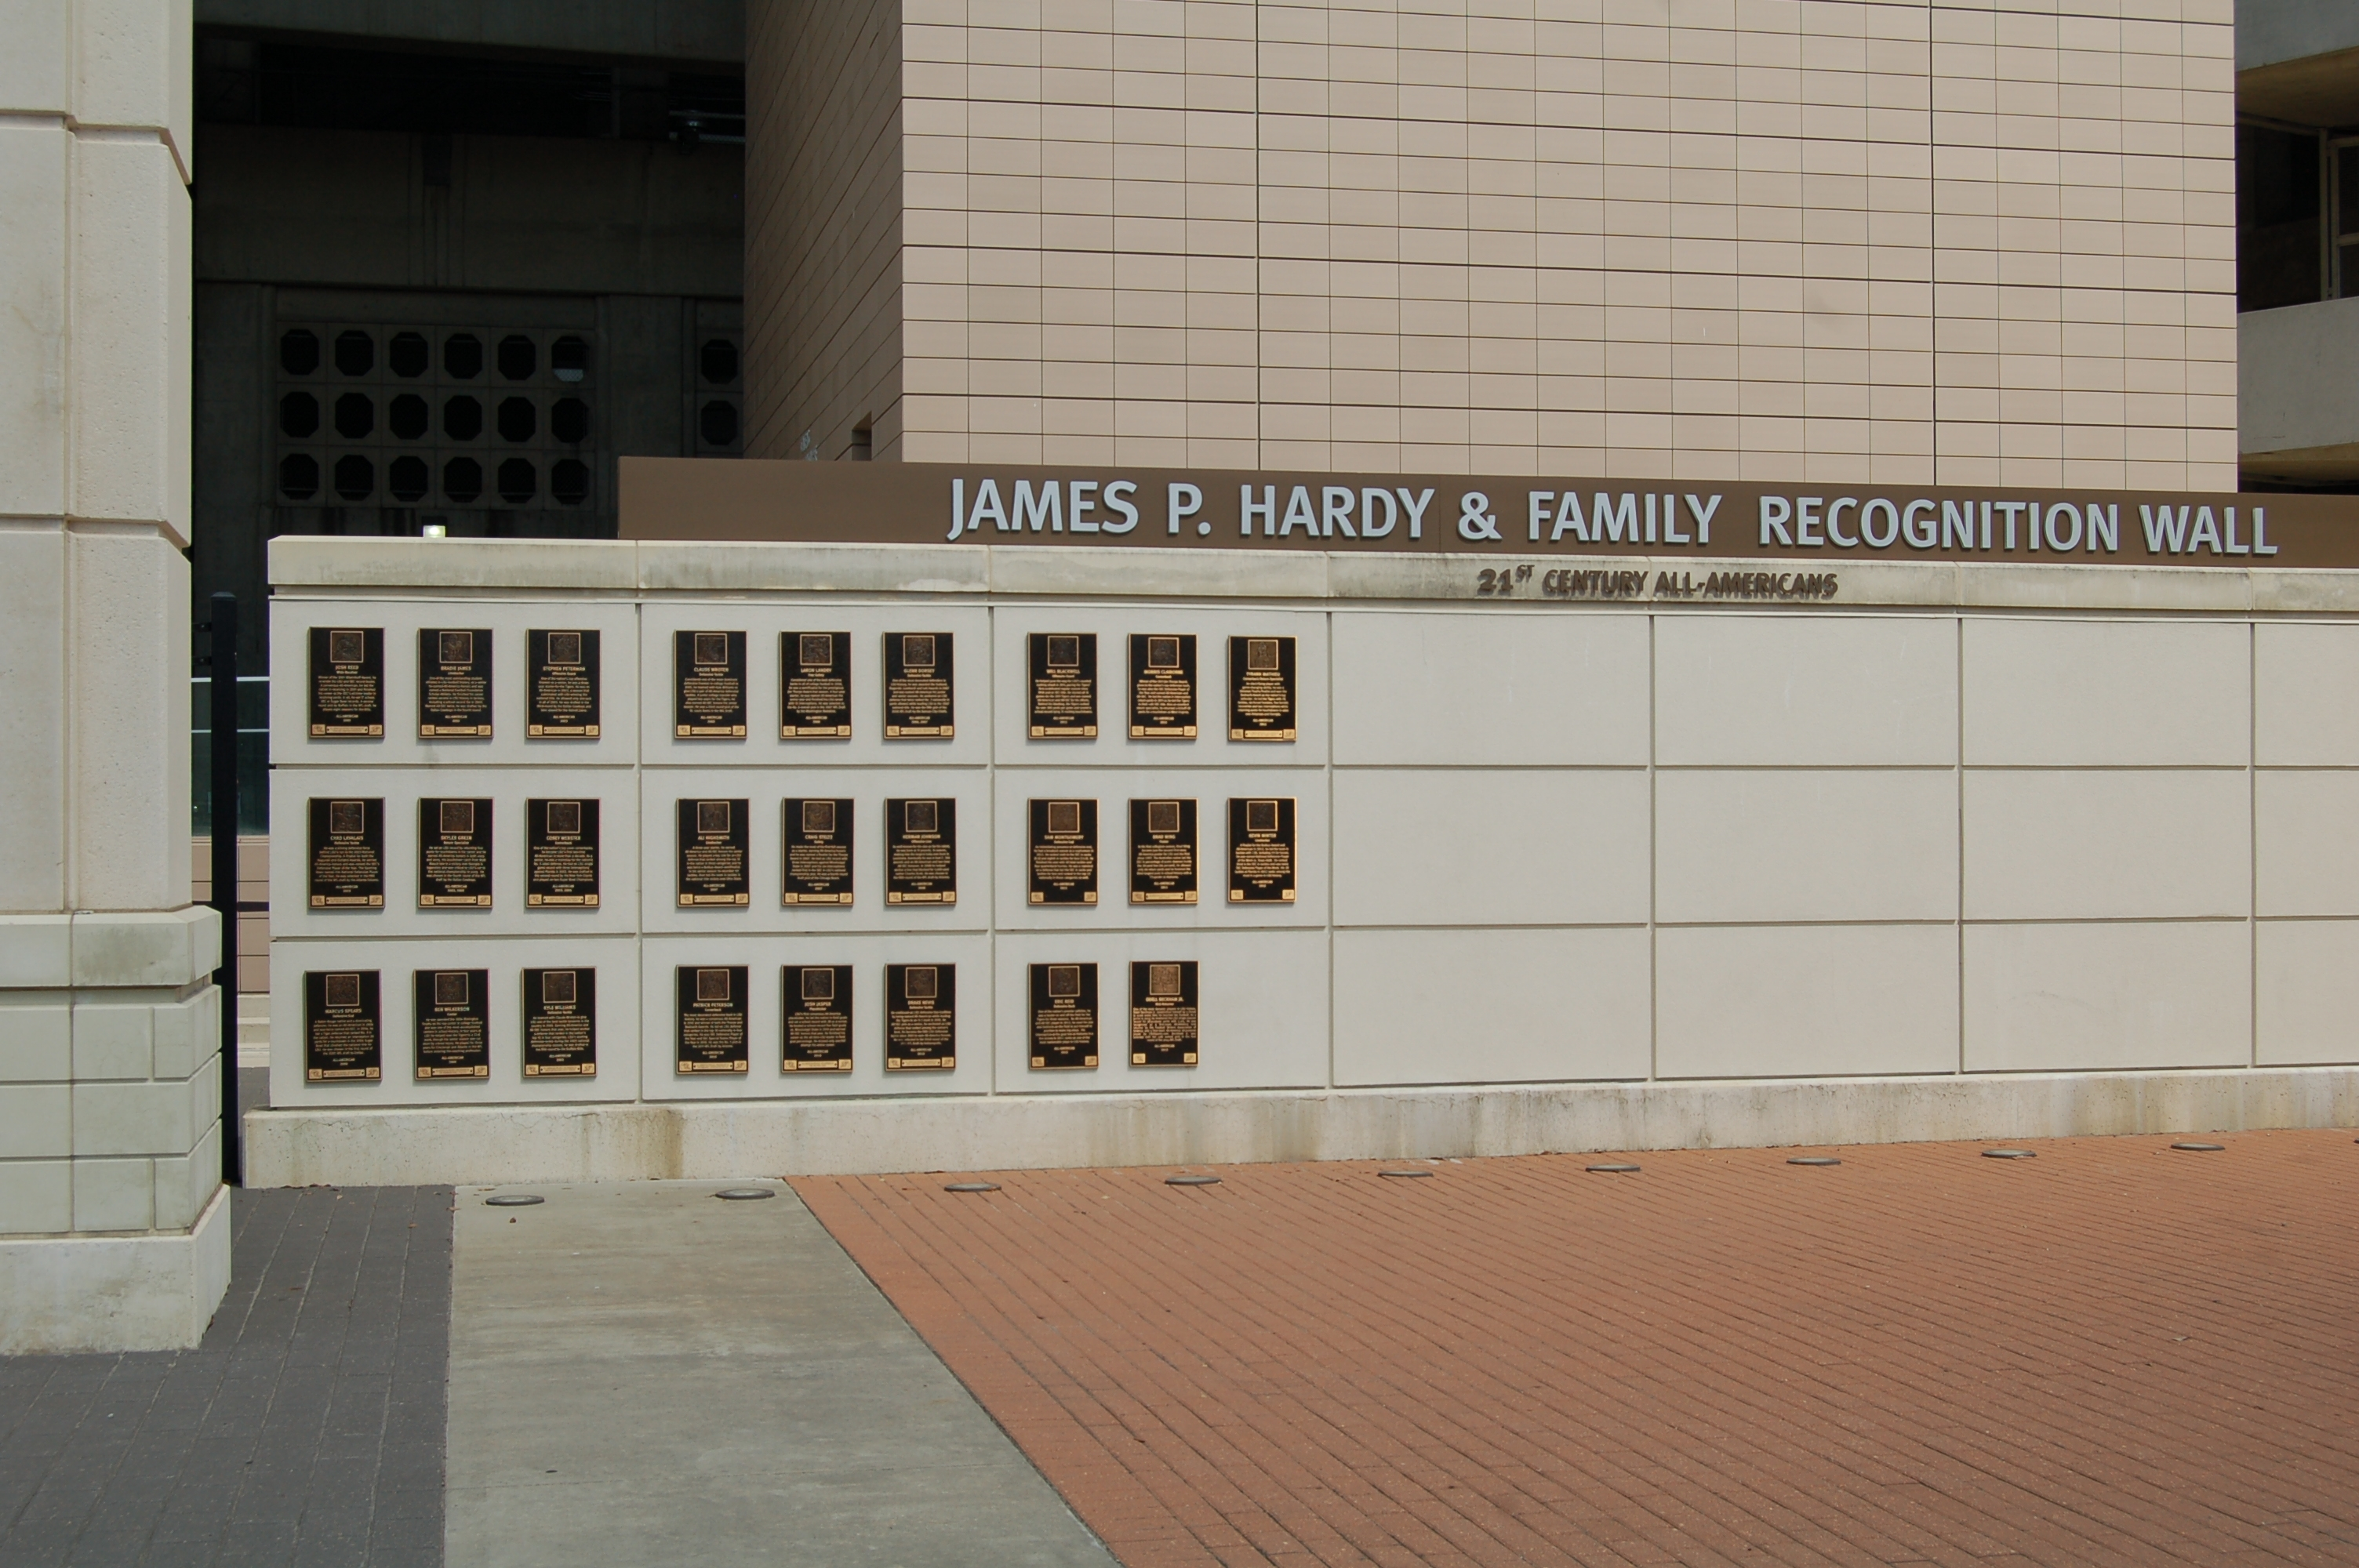 the James P. Hardy & Family Recognition Wall.